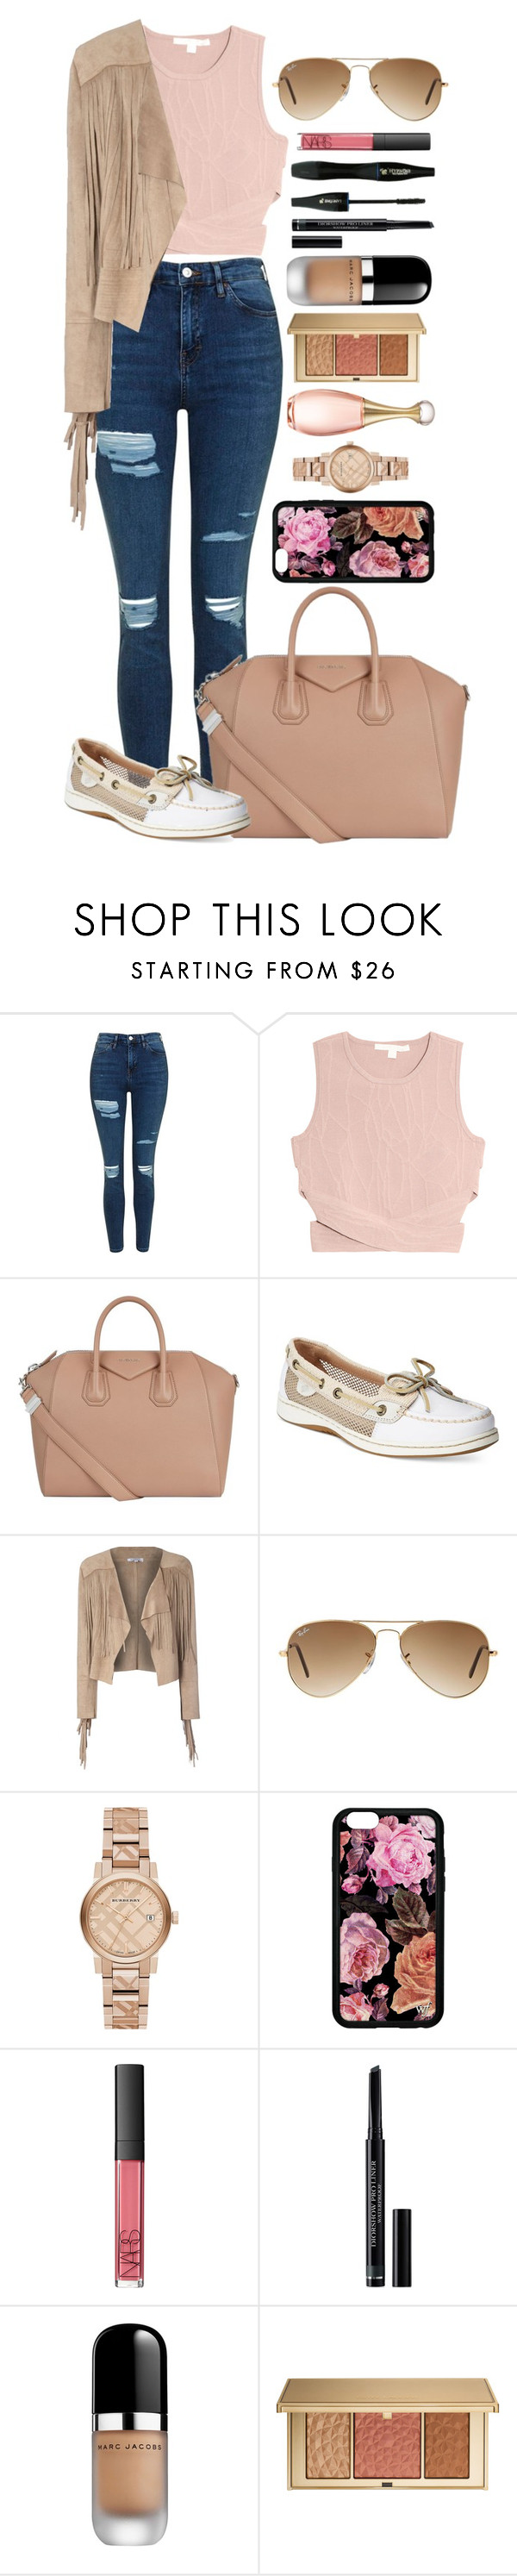 """""""Untitled #1492"""" by fabianarveloc on Polyvore featuring Topshop, Jonathan Simkhai, Givenchy, Sperry, Glamorous, Ray-Ban, Burberry, NARS Cosmetics, Lancôme and Christian Dior"""